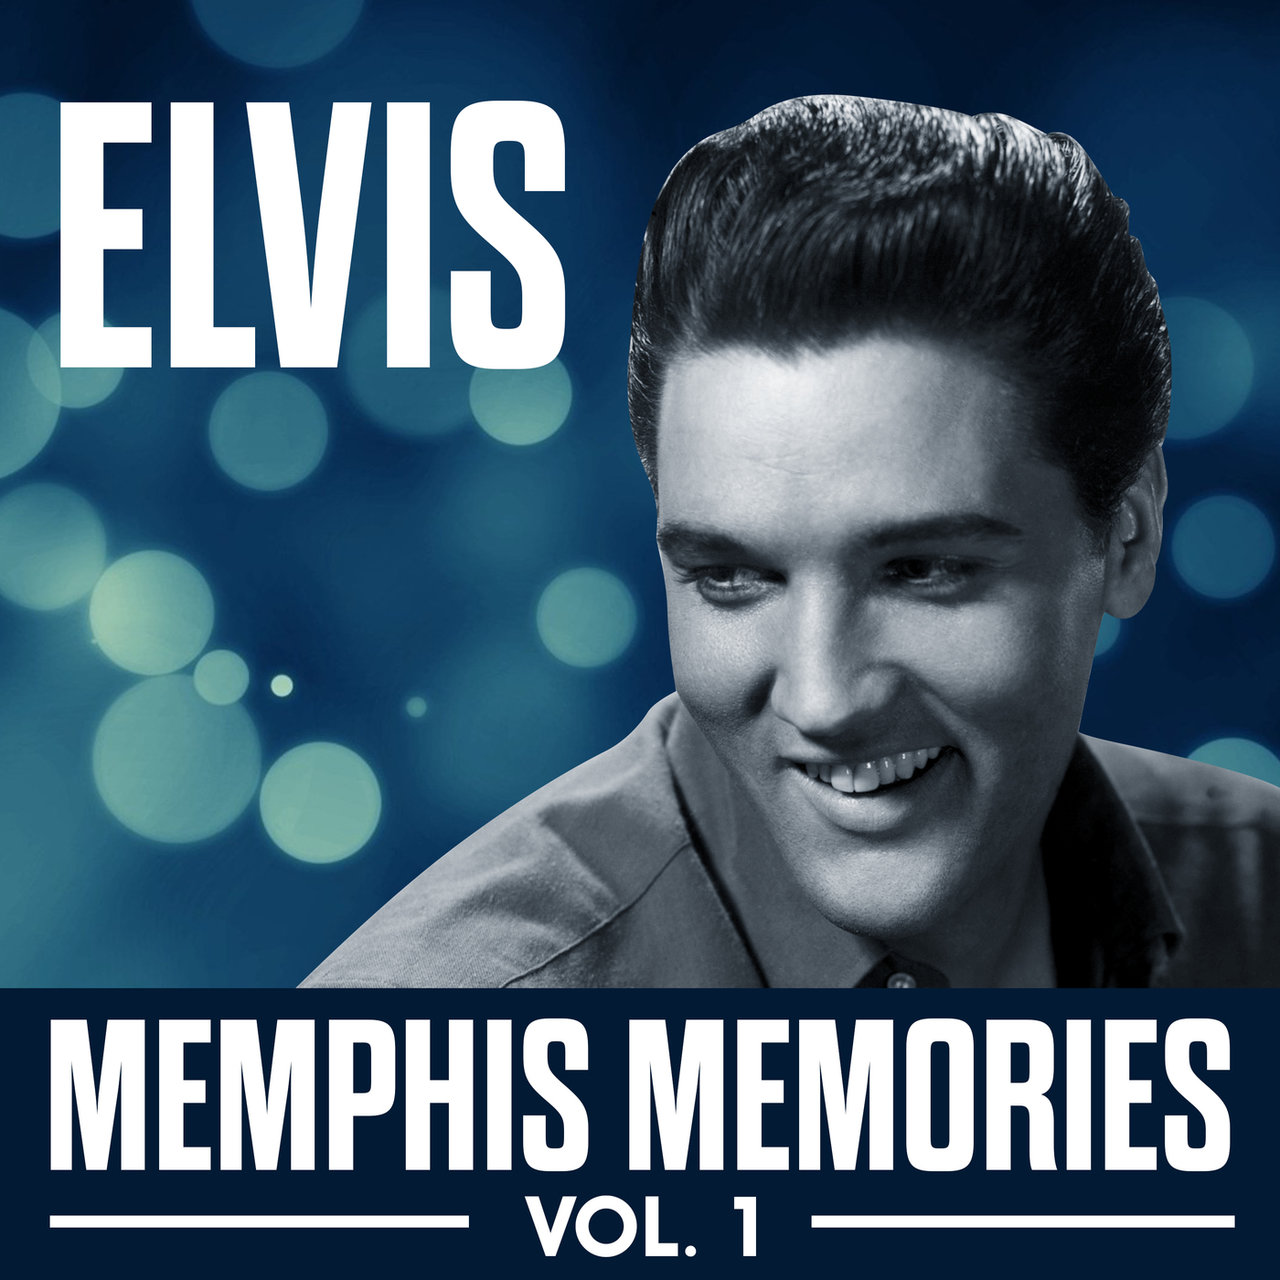 Elvis - Memphis Memories Vol. 1